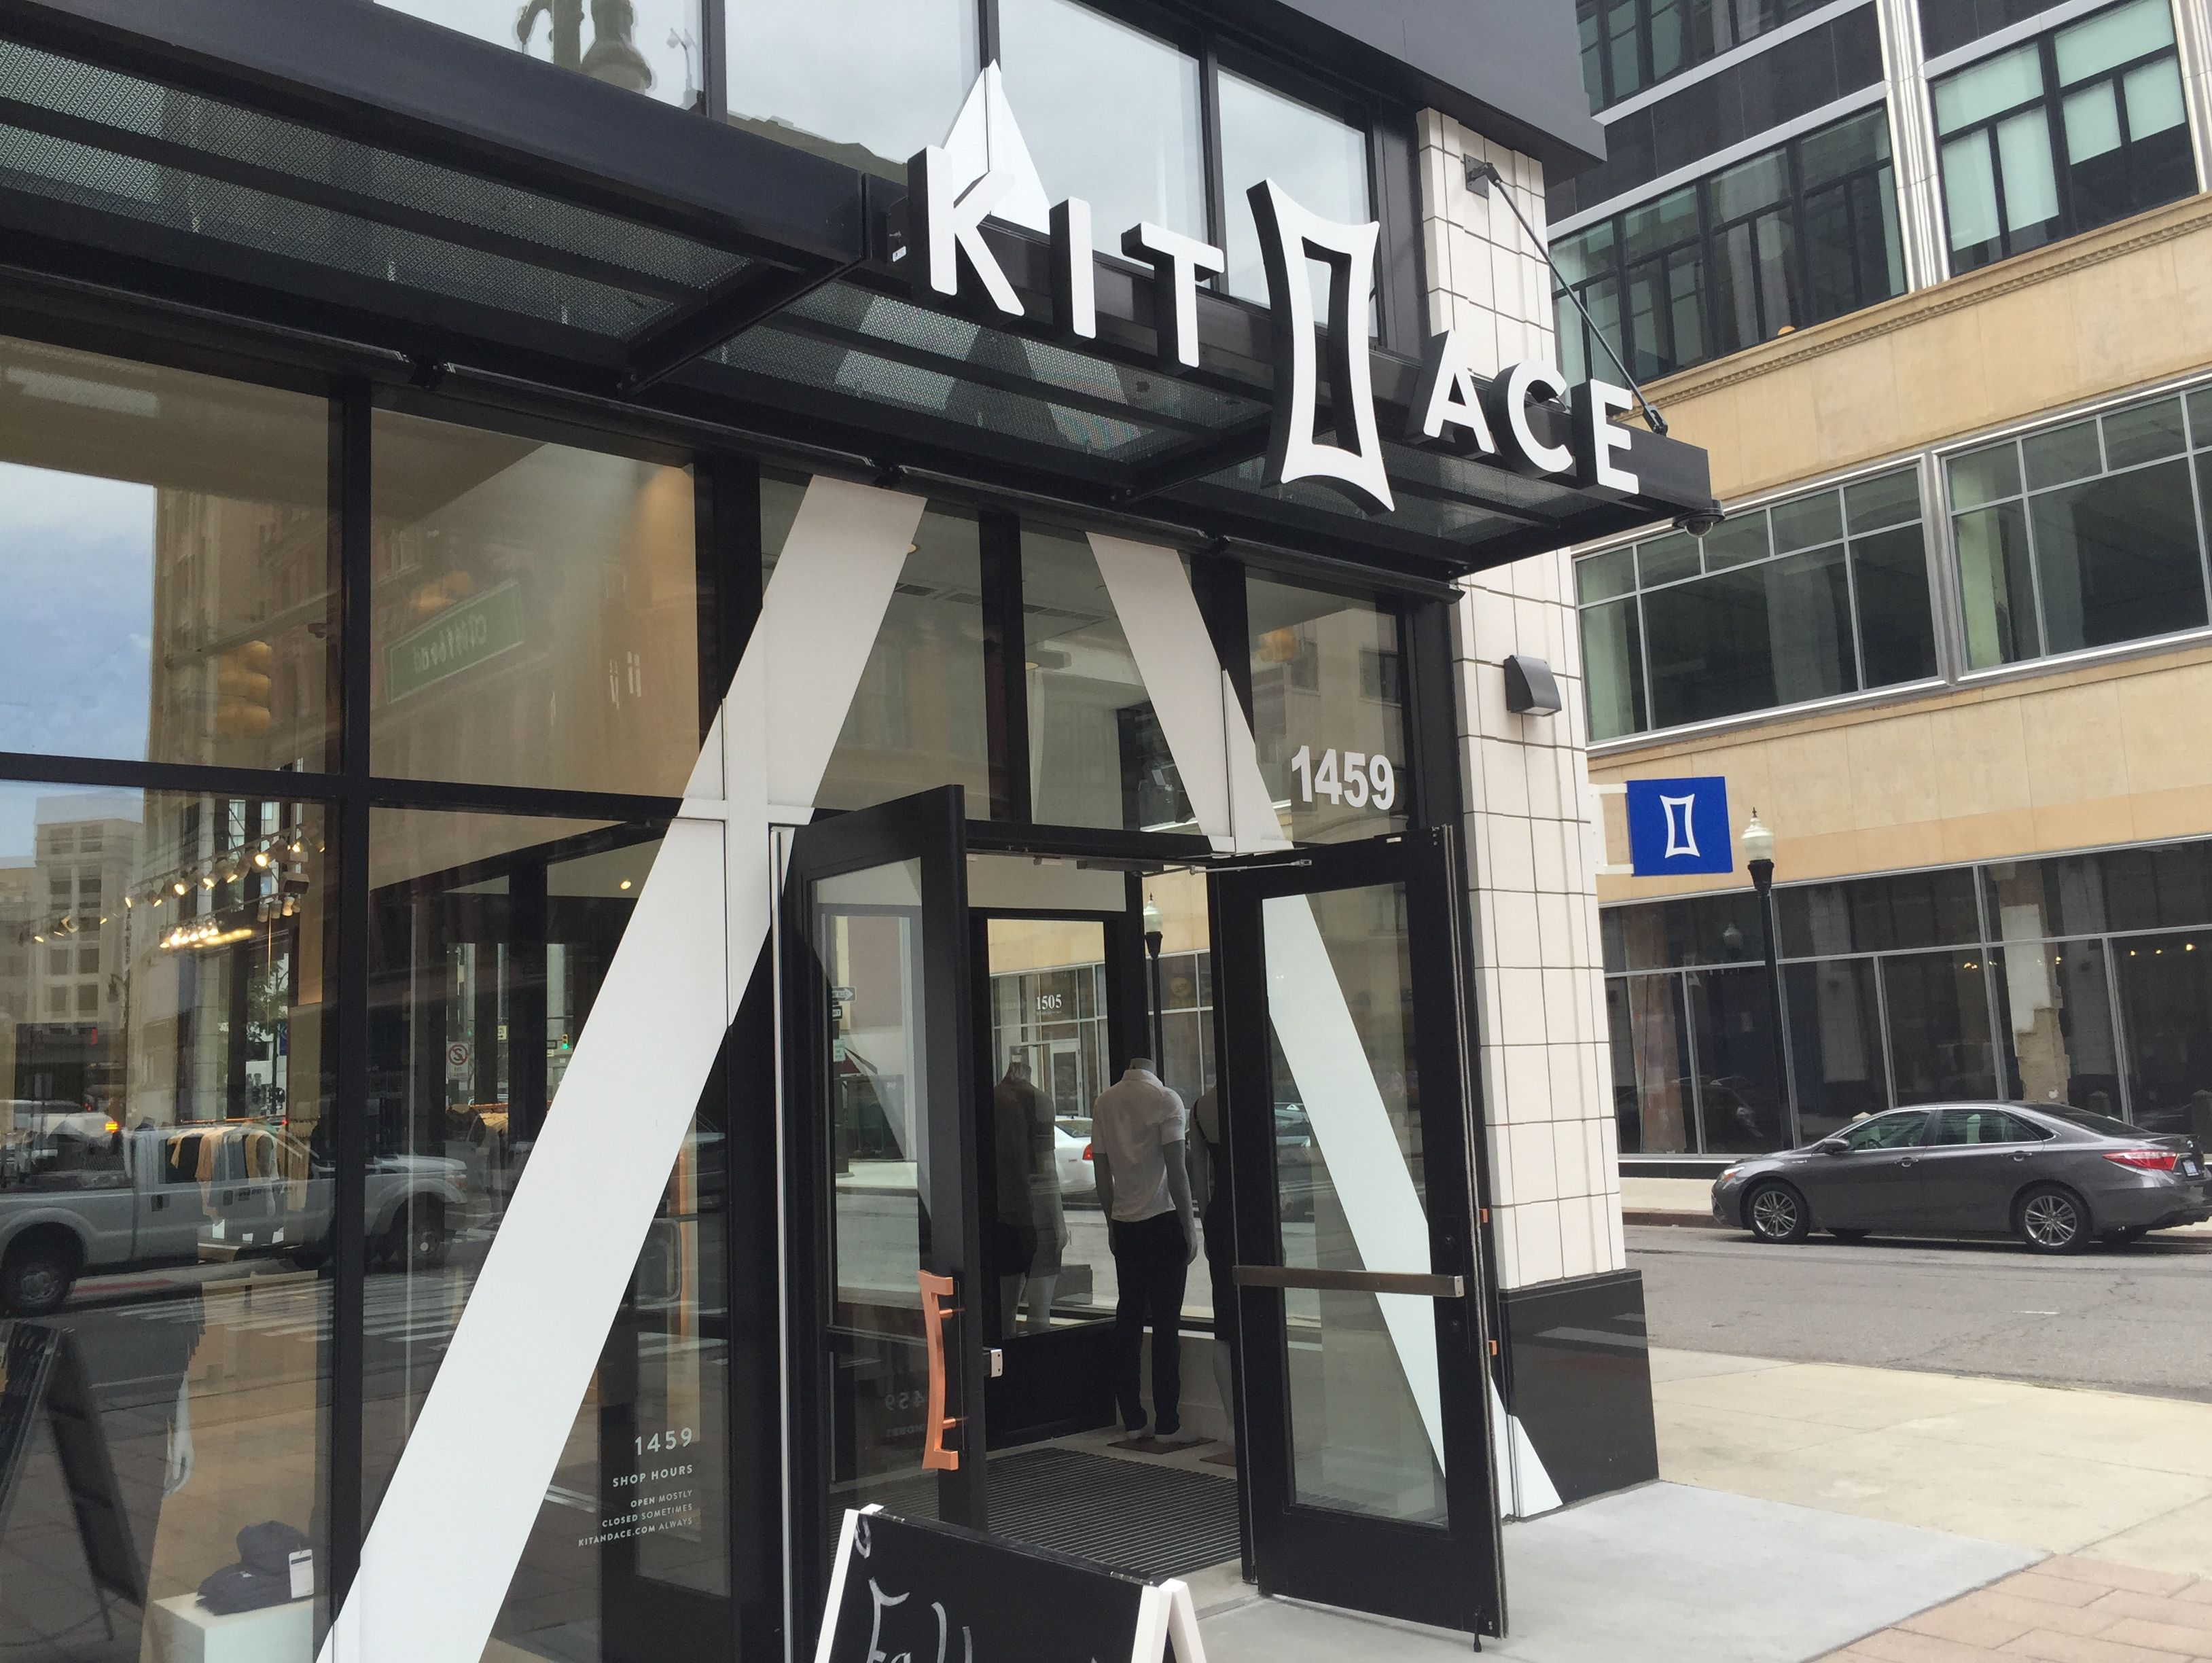 Kit and Ace clothing store in Detroit does not take cash for purchases, as part of a corporate approach.